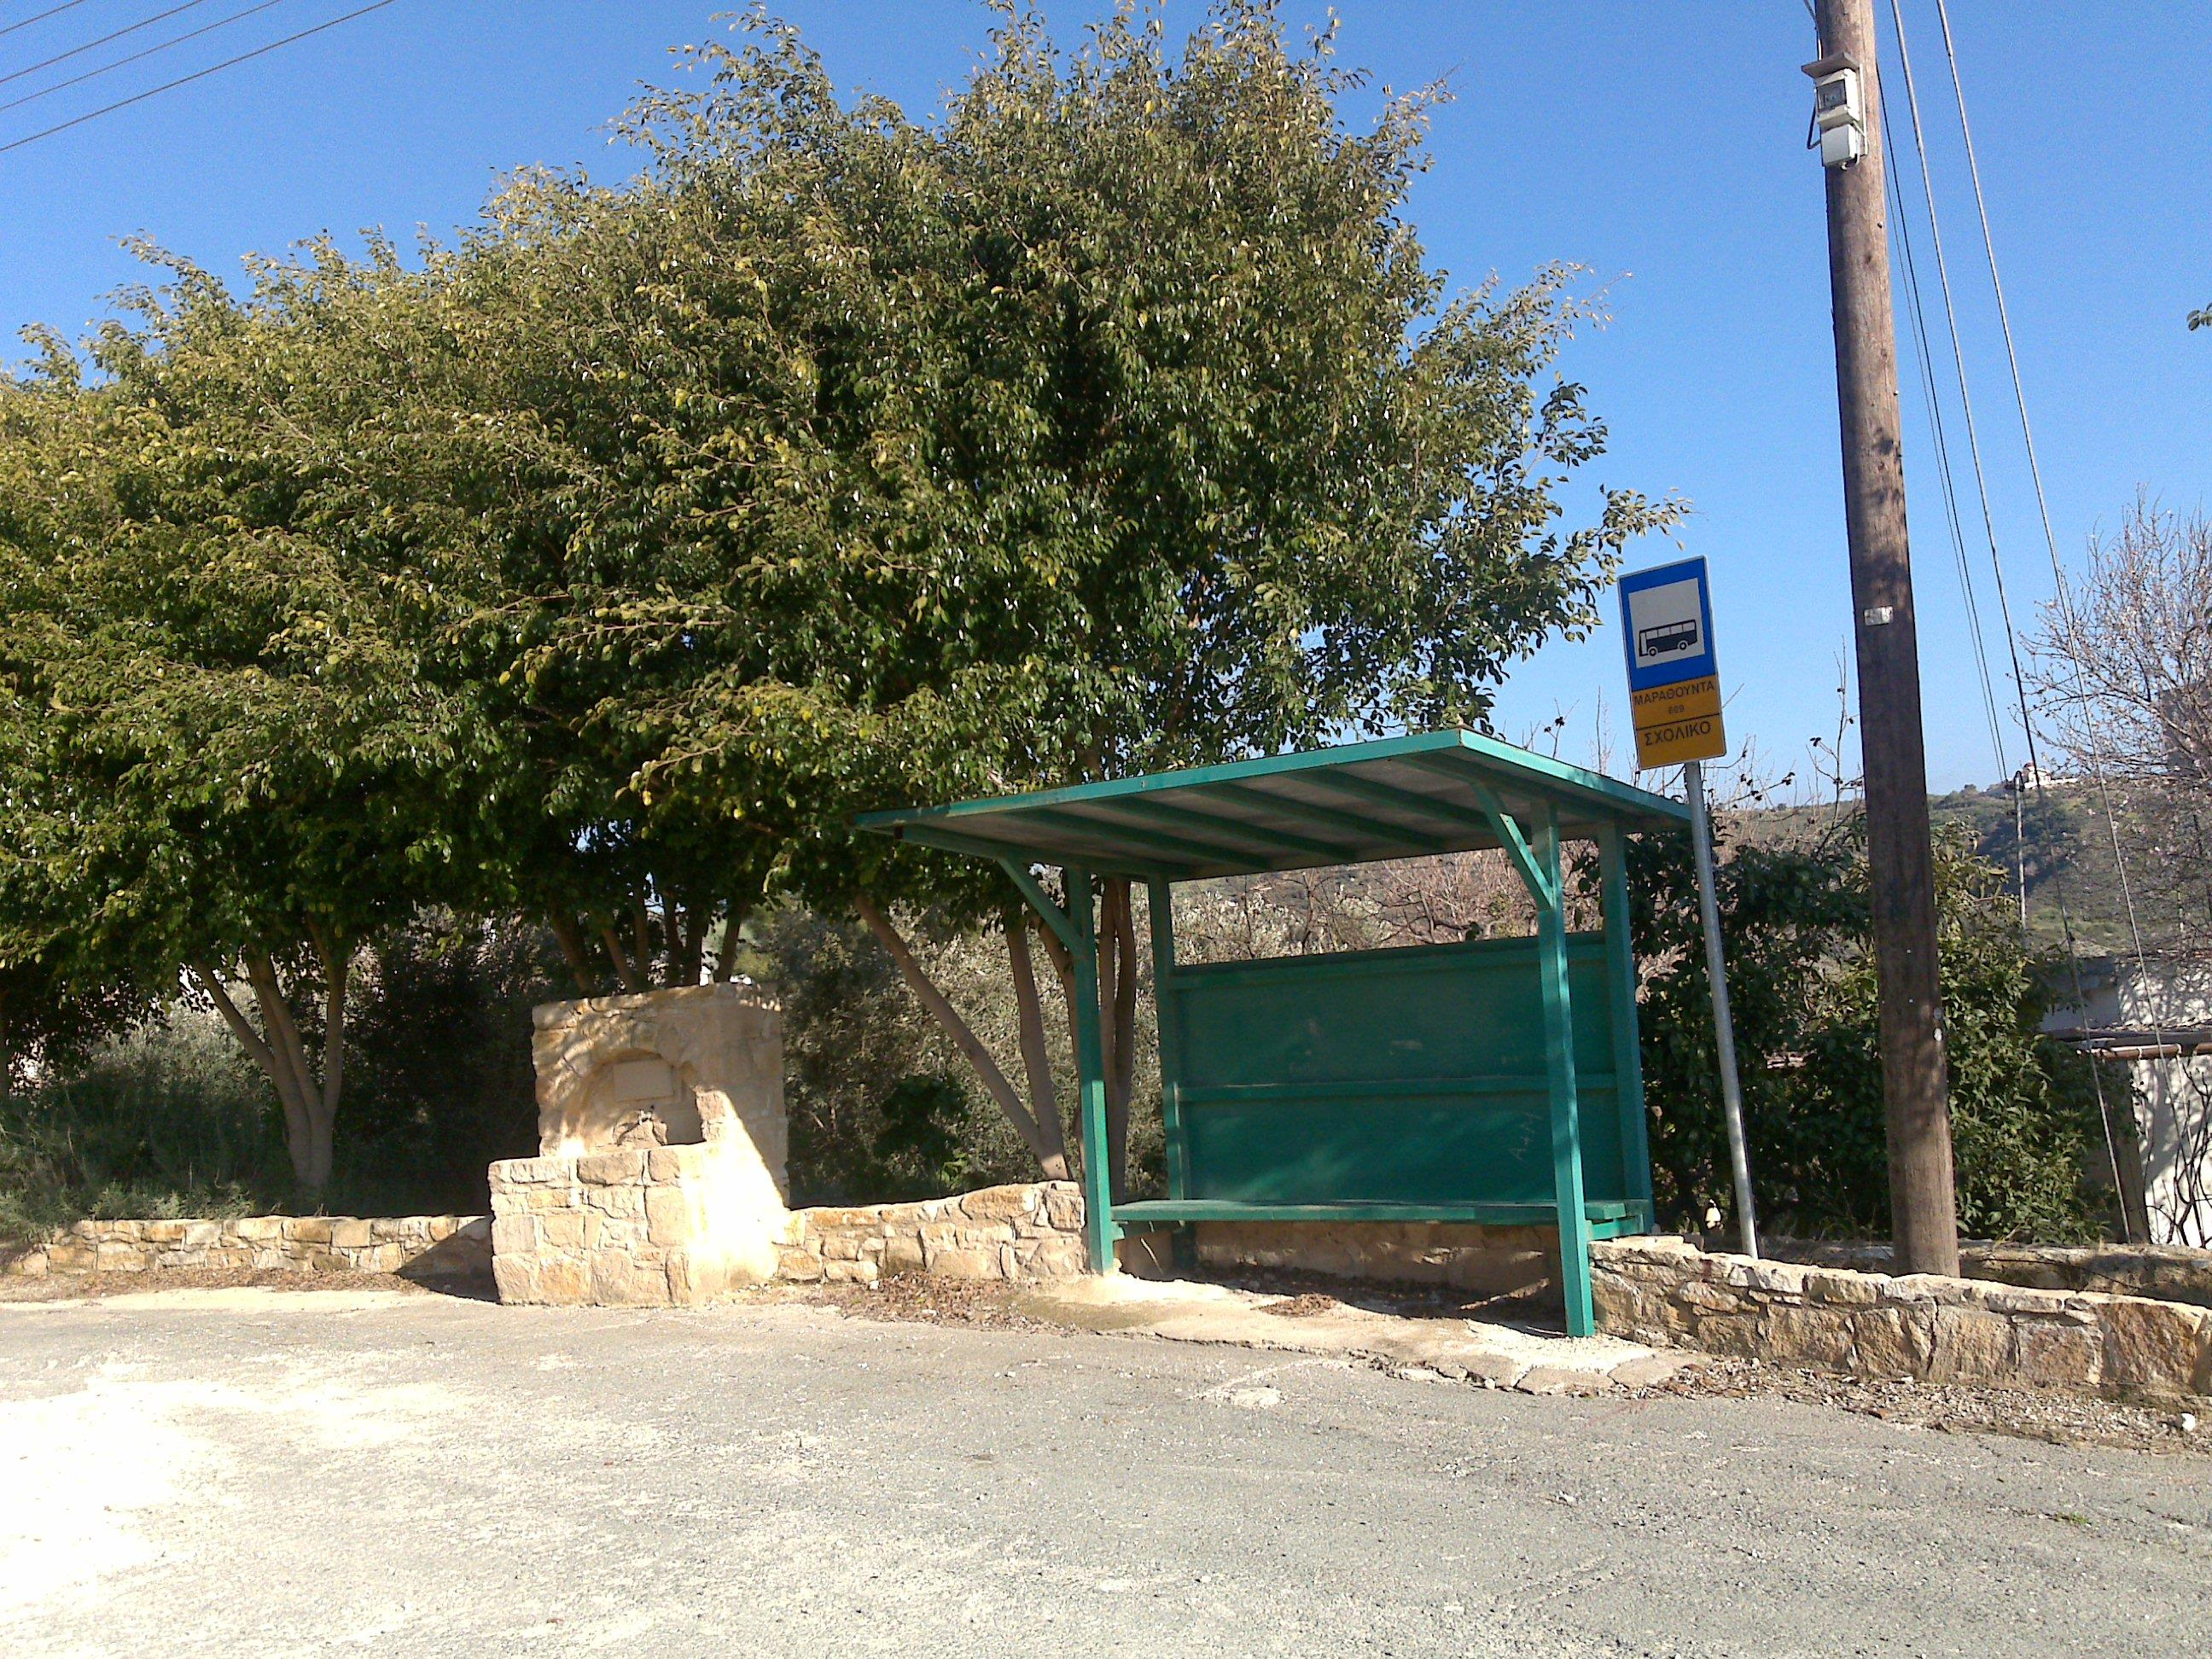 Cypriot Village Bus Stop